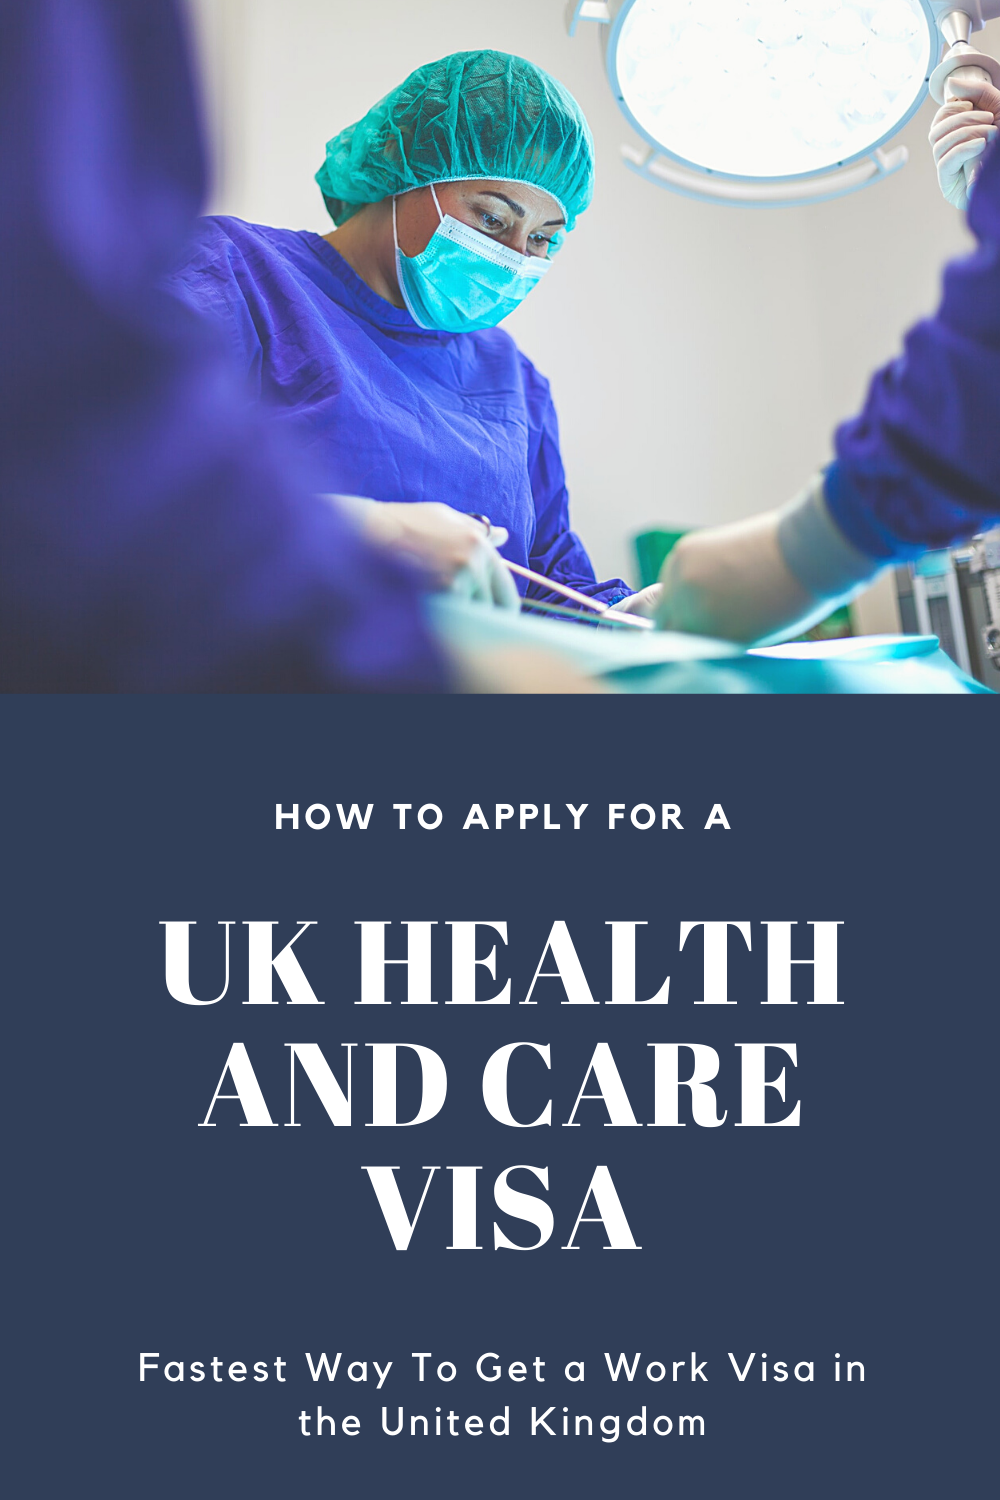 How To Apply for a UK Health and Care Visa